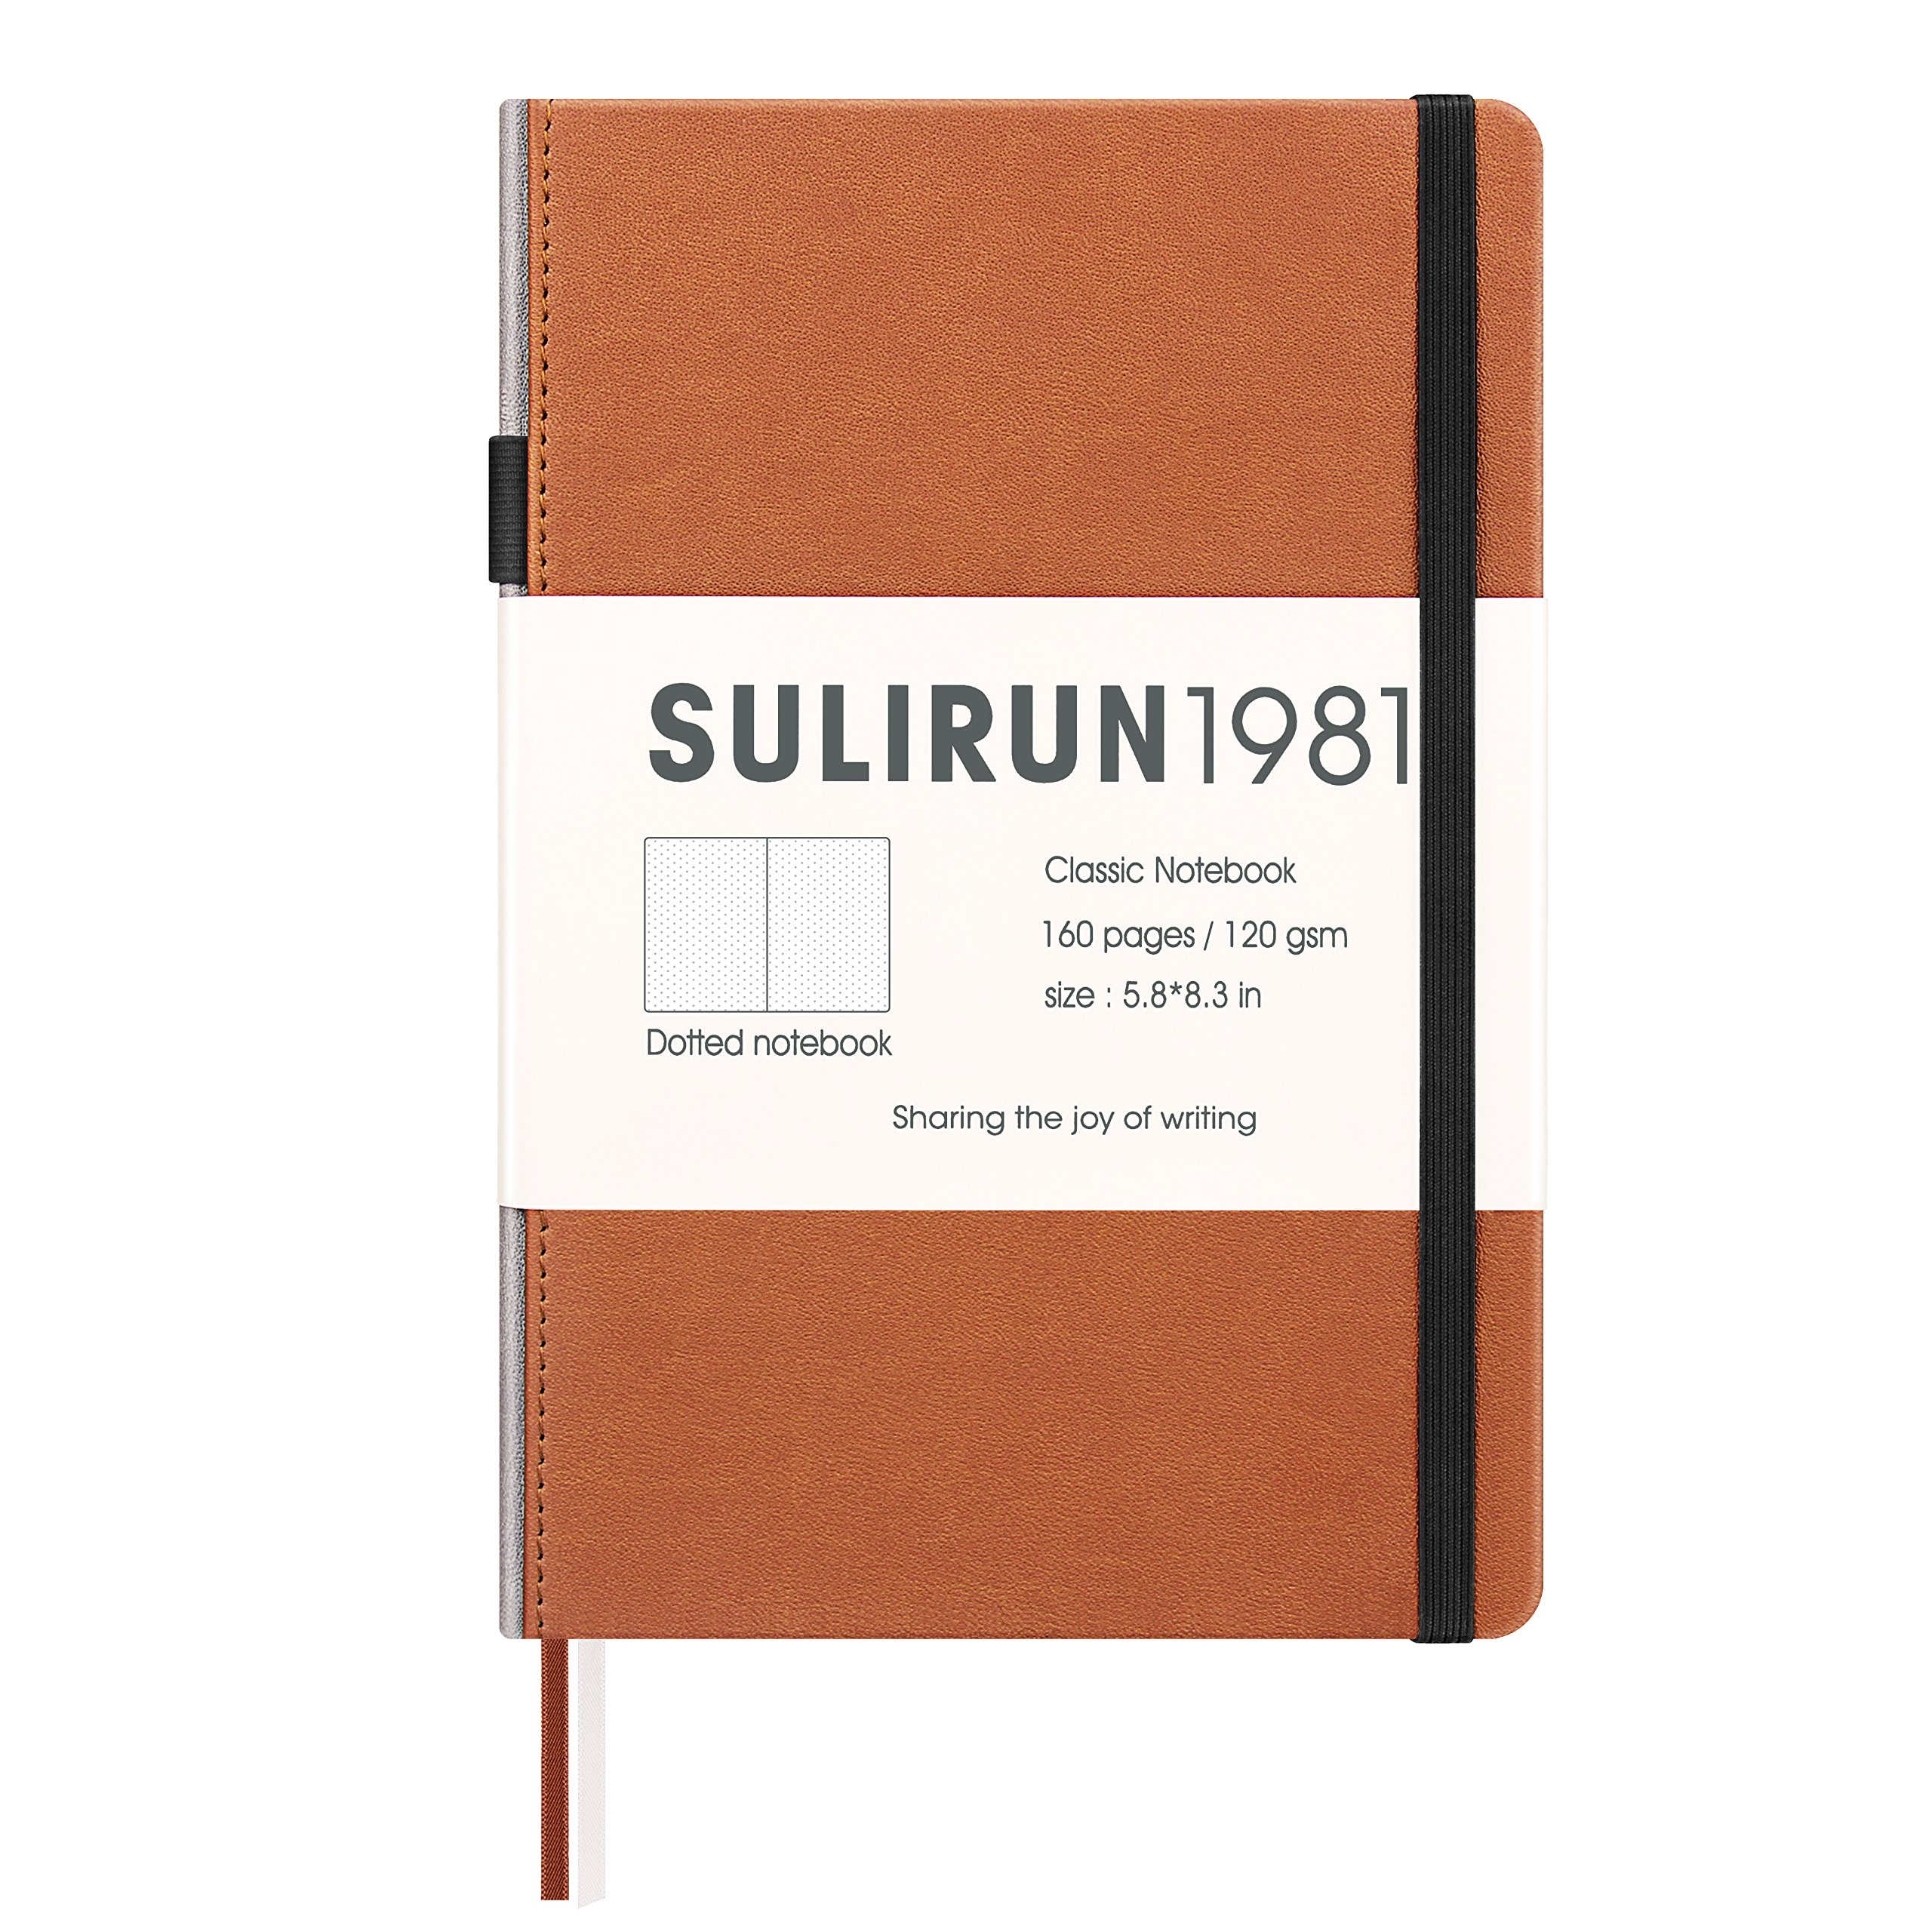 SULIRUN 1981 Notebook, A5 Hardcover Dot Grid Notebook with Pen Loop, Premium Thick Paper -120 gsm,Bullet Journal (light brown)